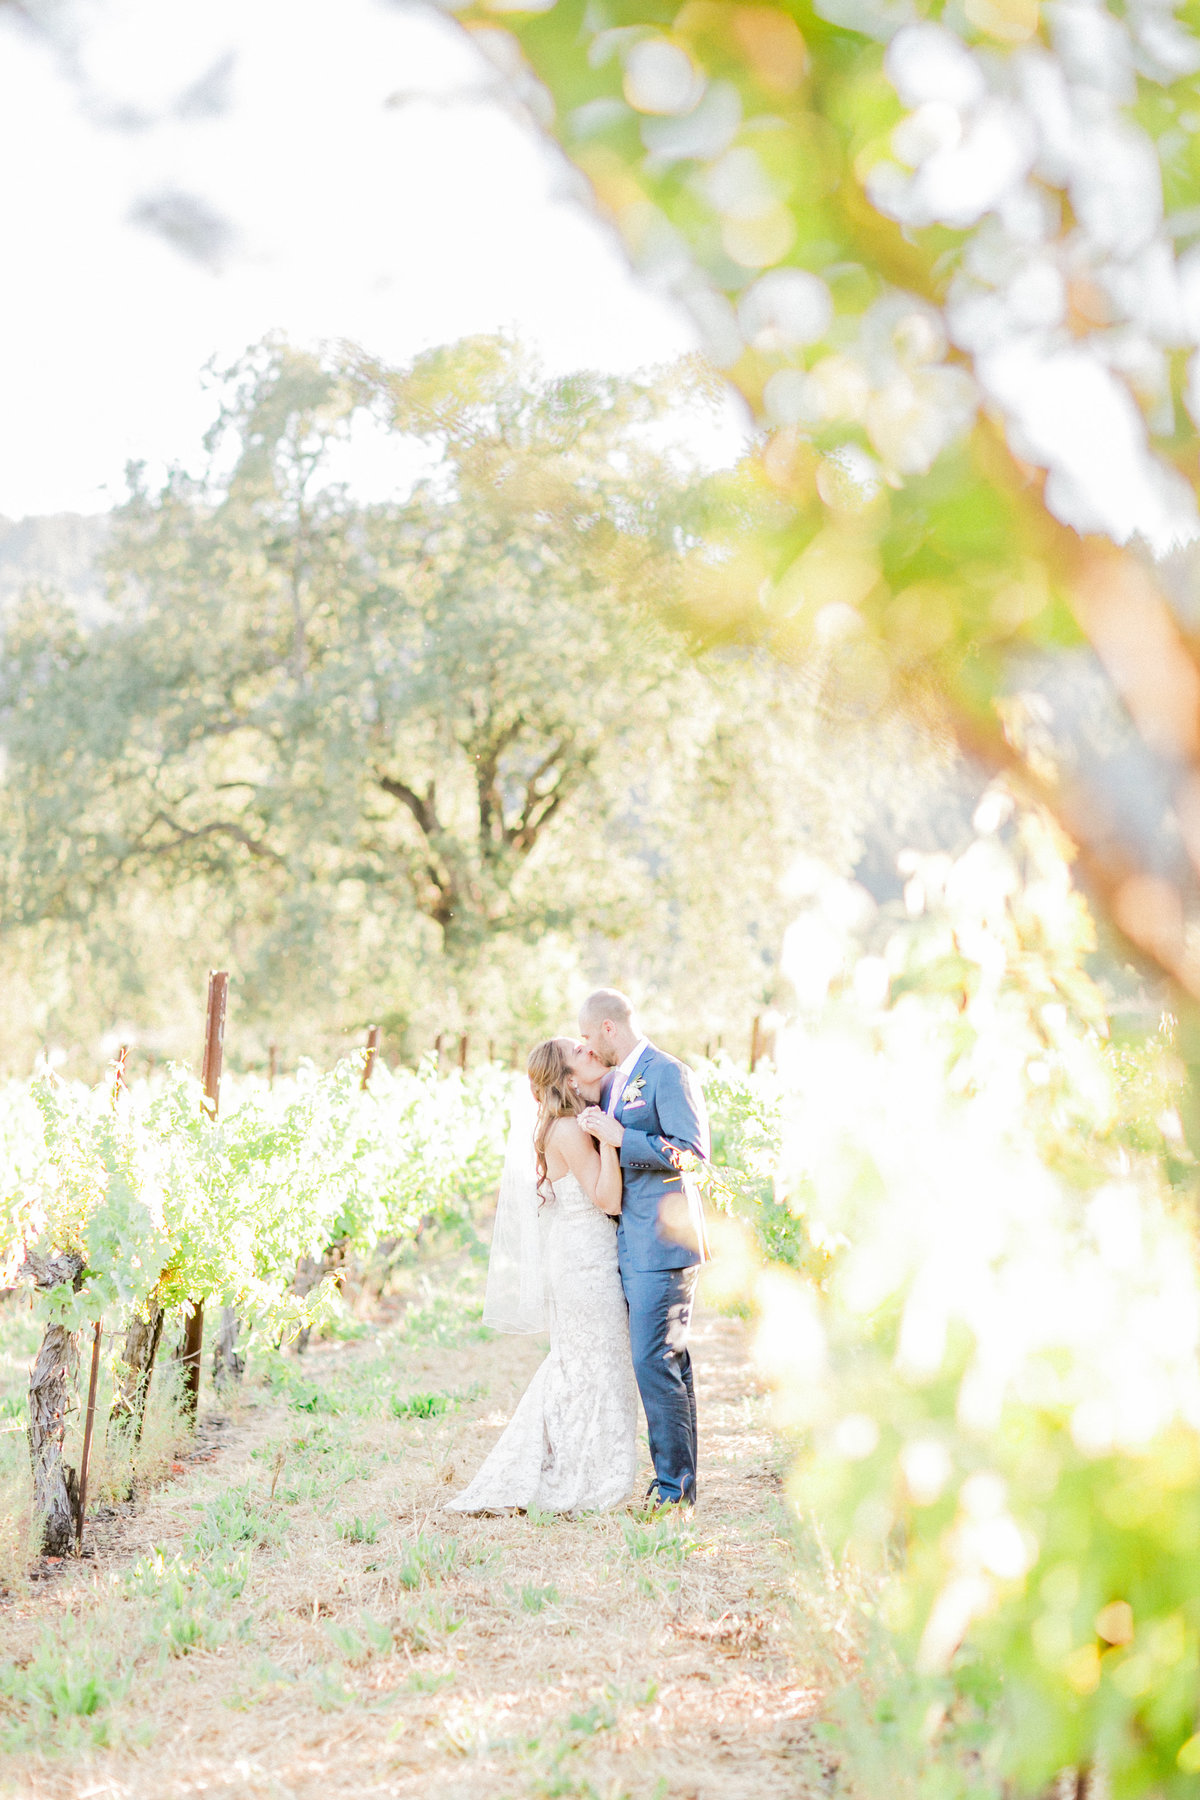 California Bride & Groom Kiss